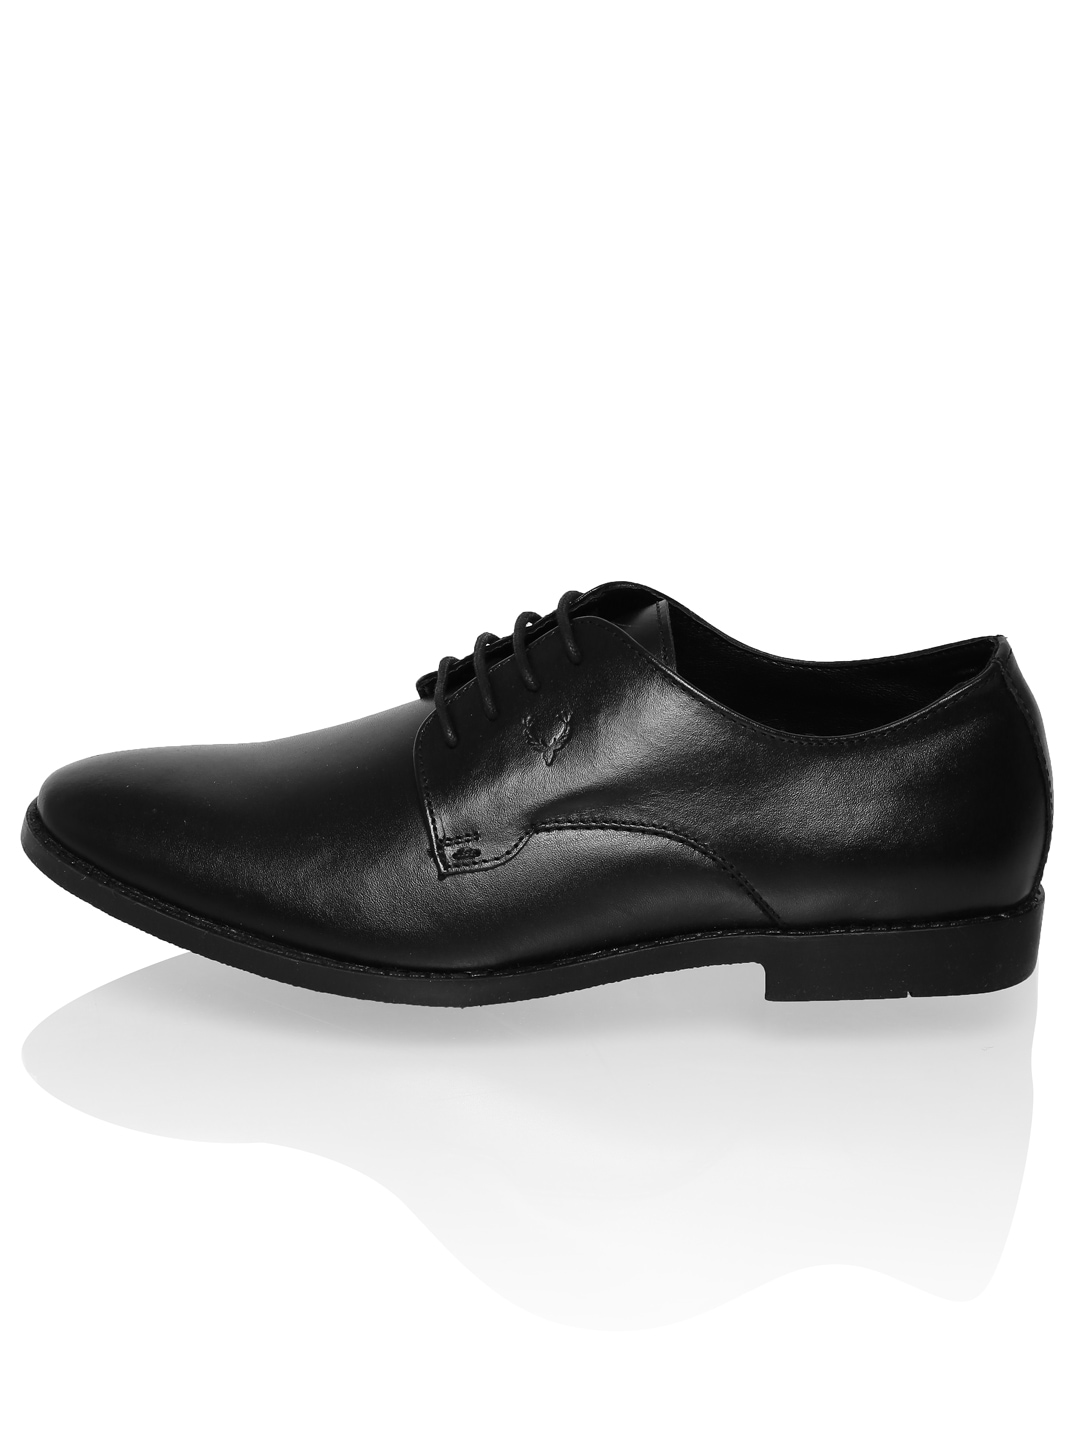 myntra allen solly black leather formal shoes 711879